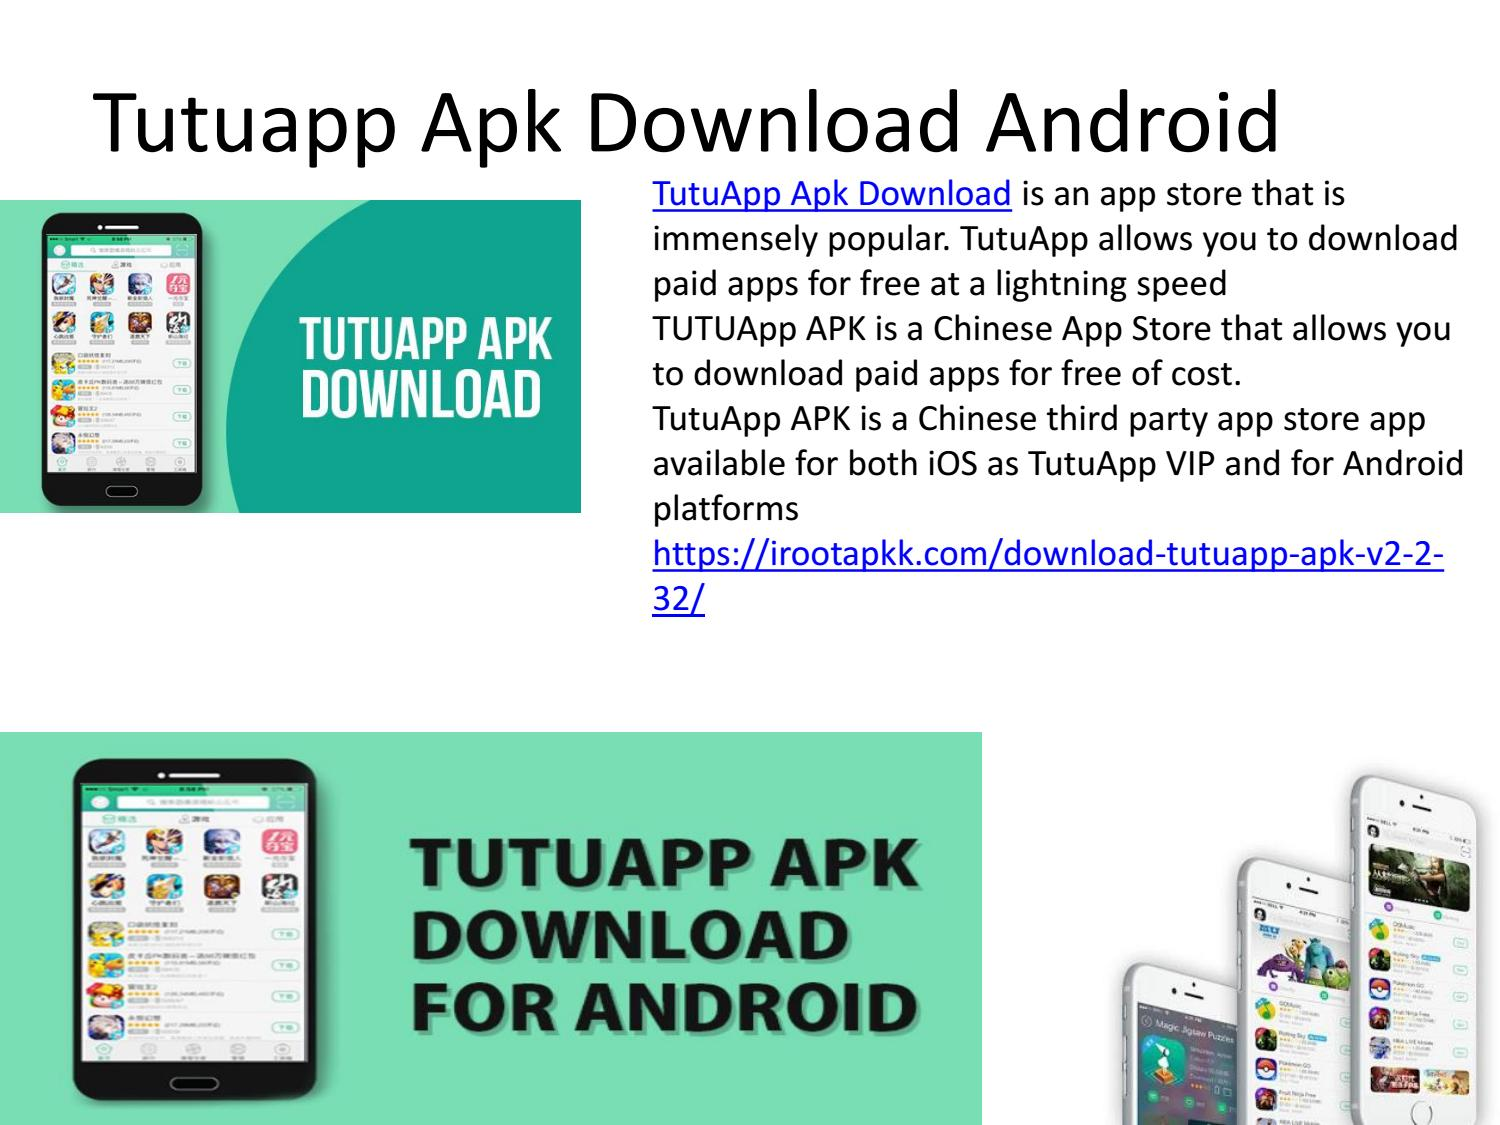 Tutuapp apk download android output by udvebs - issuu